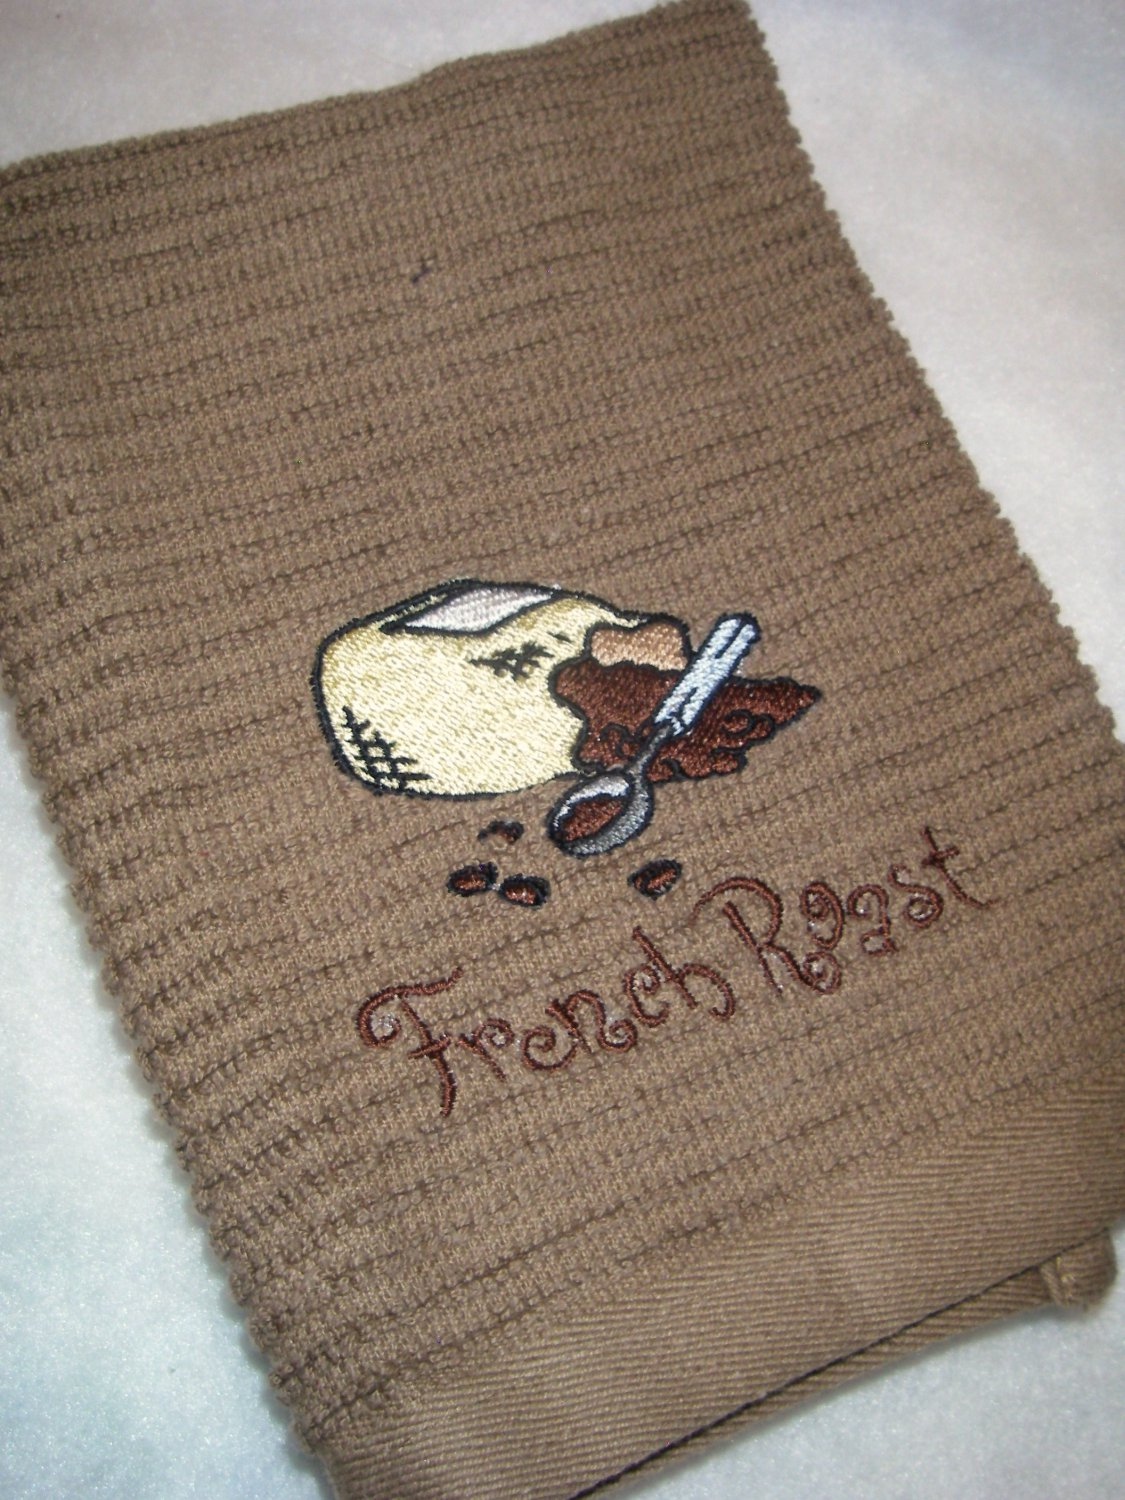 French Roast Coffee Bag - Embroidered Hand Towel